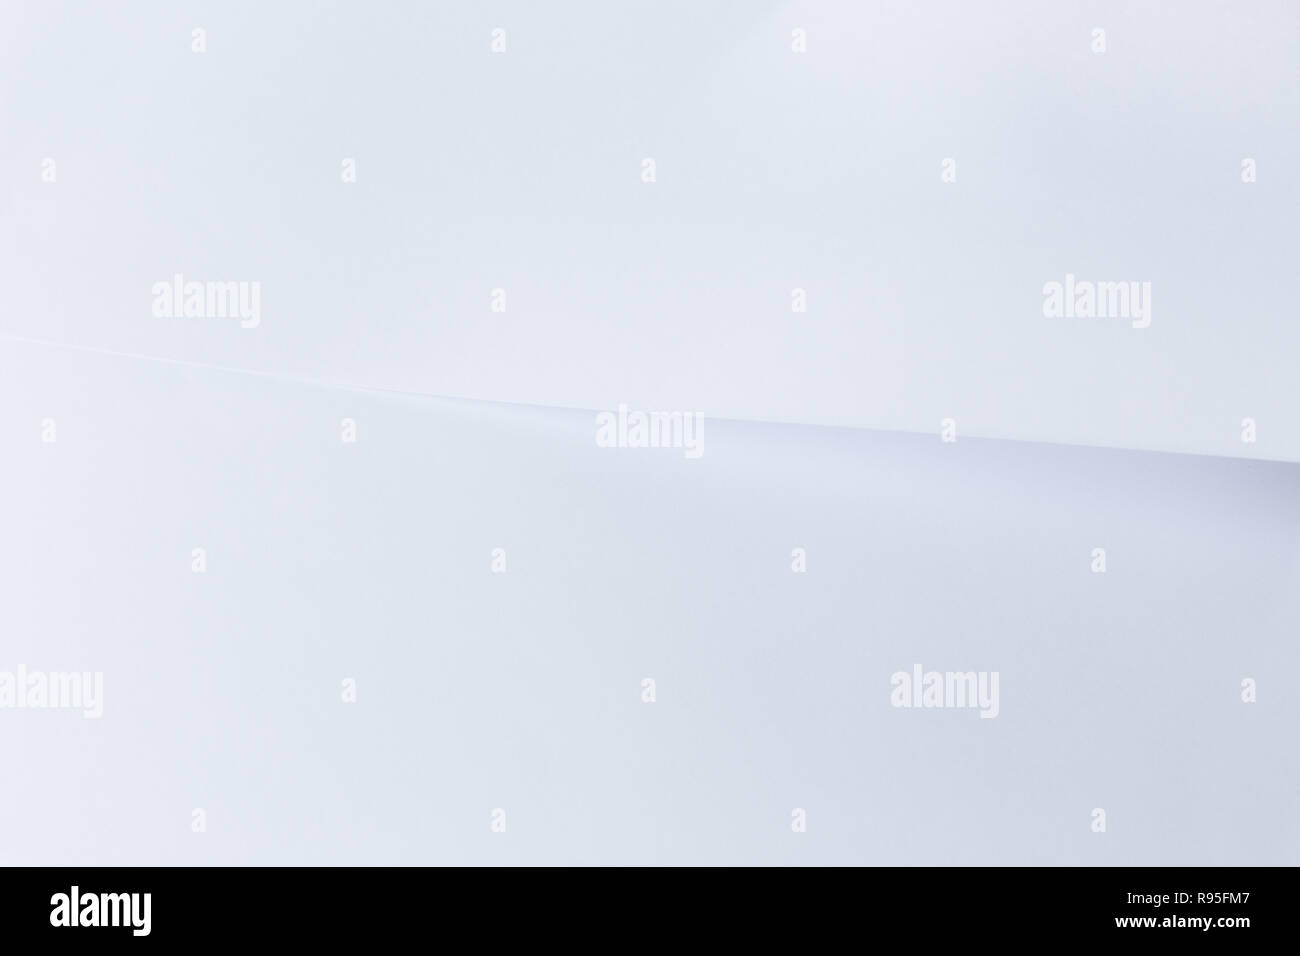 Clean white sheet of paper overlayed with another white paper. Very simple and minimal abstract background. - Stock Image